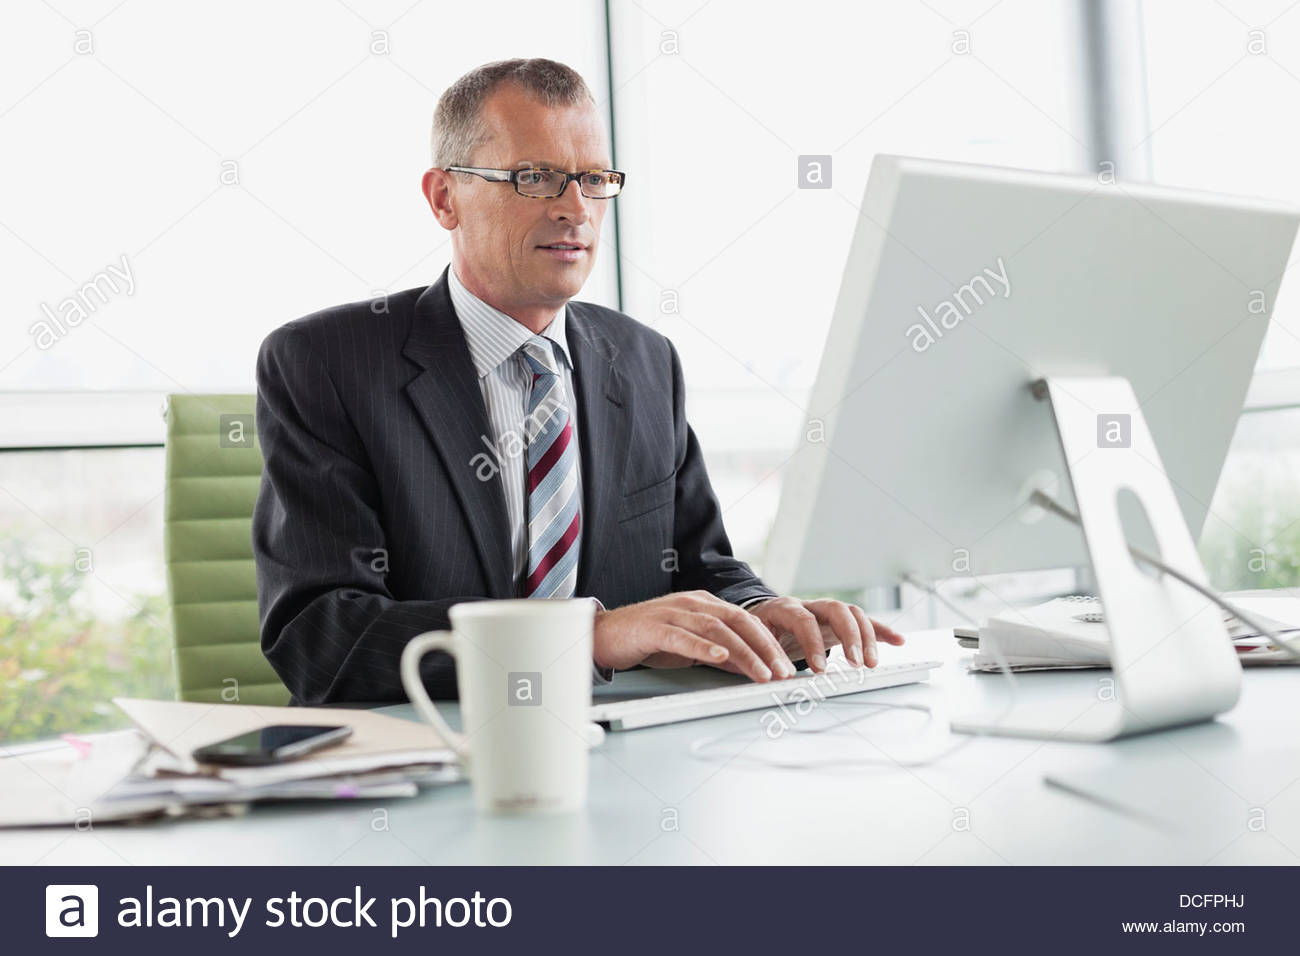 Businessman working on computer in office - Stock Image